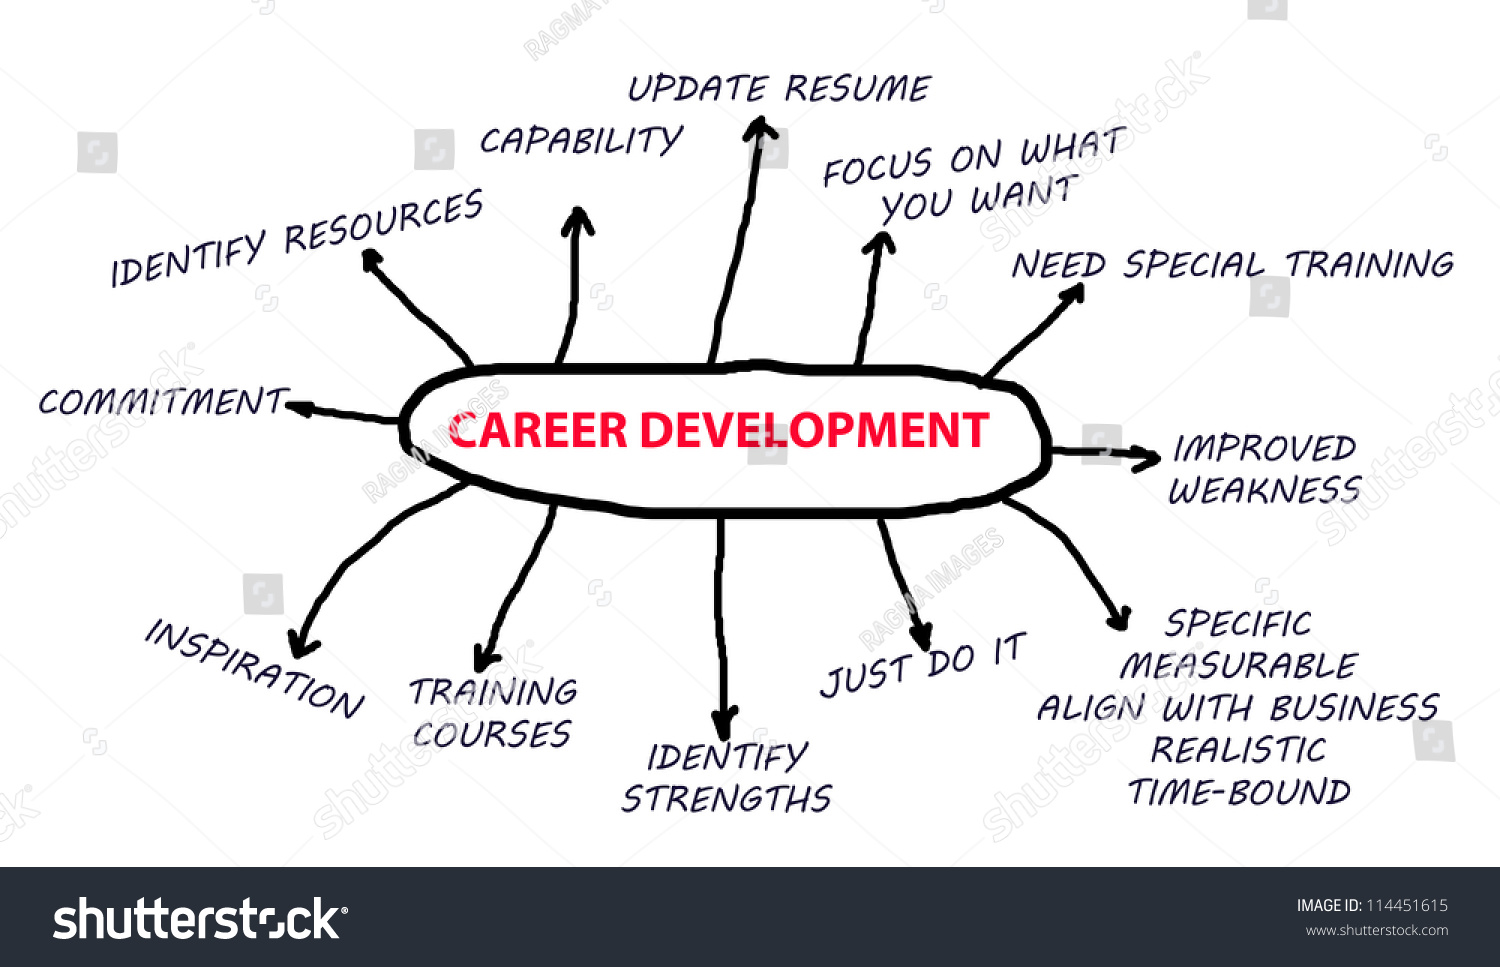 career development flowchart in a white background abstract - Career Flowchart